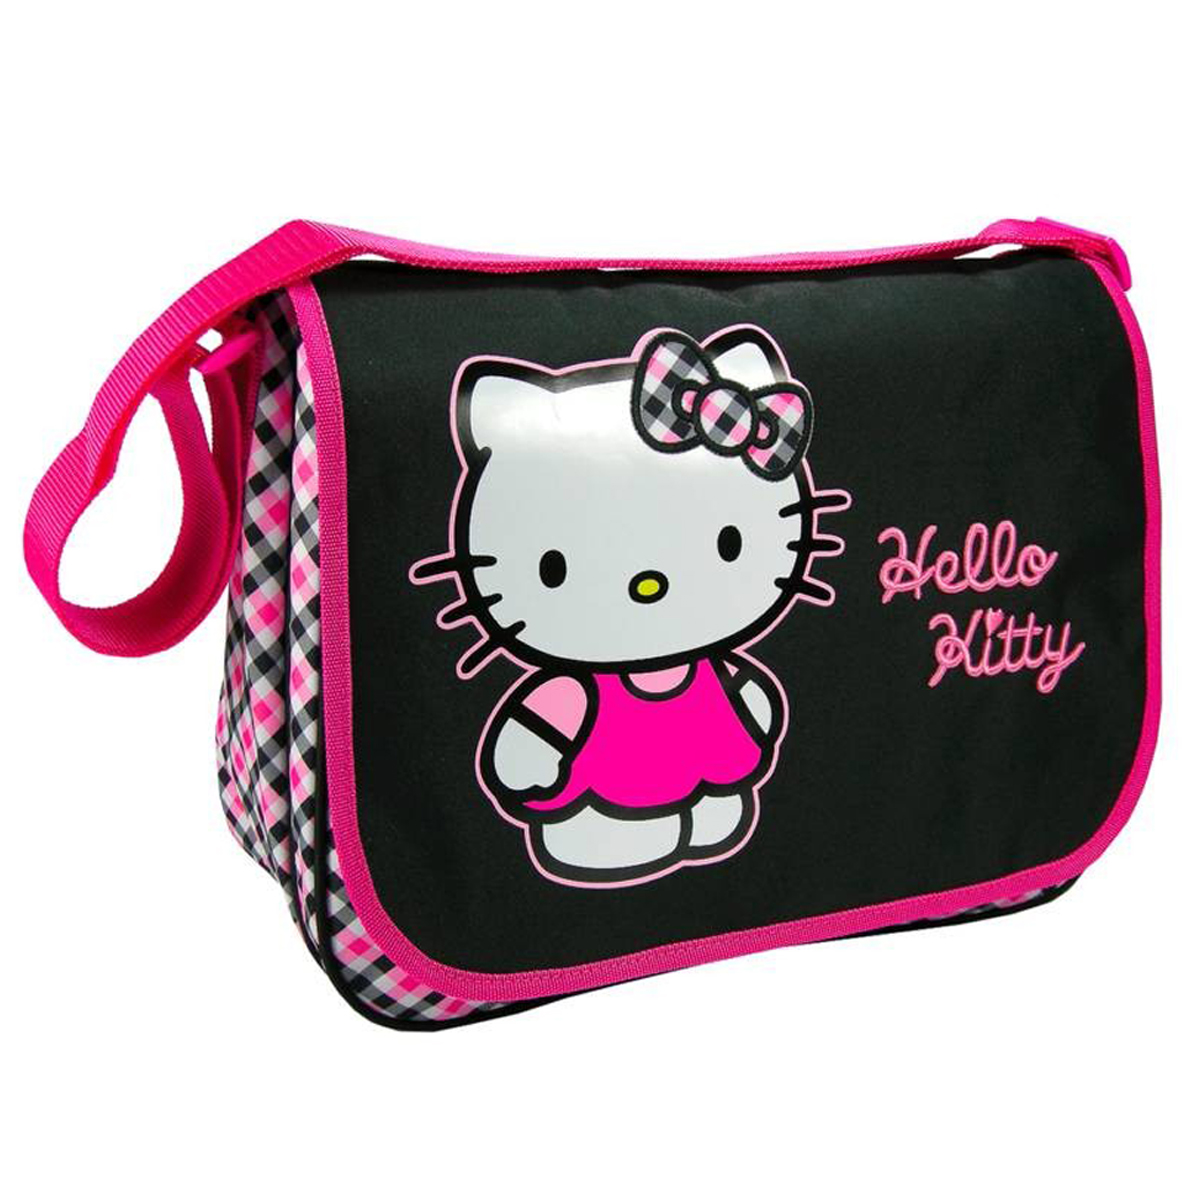 Sac besace A4 \'Hello Kitty\' noir rose (2 compartiments) - 36x27x11 cm - [J6500]